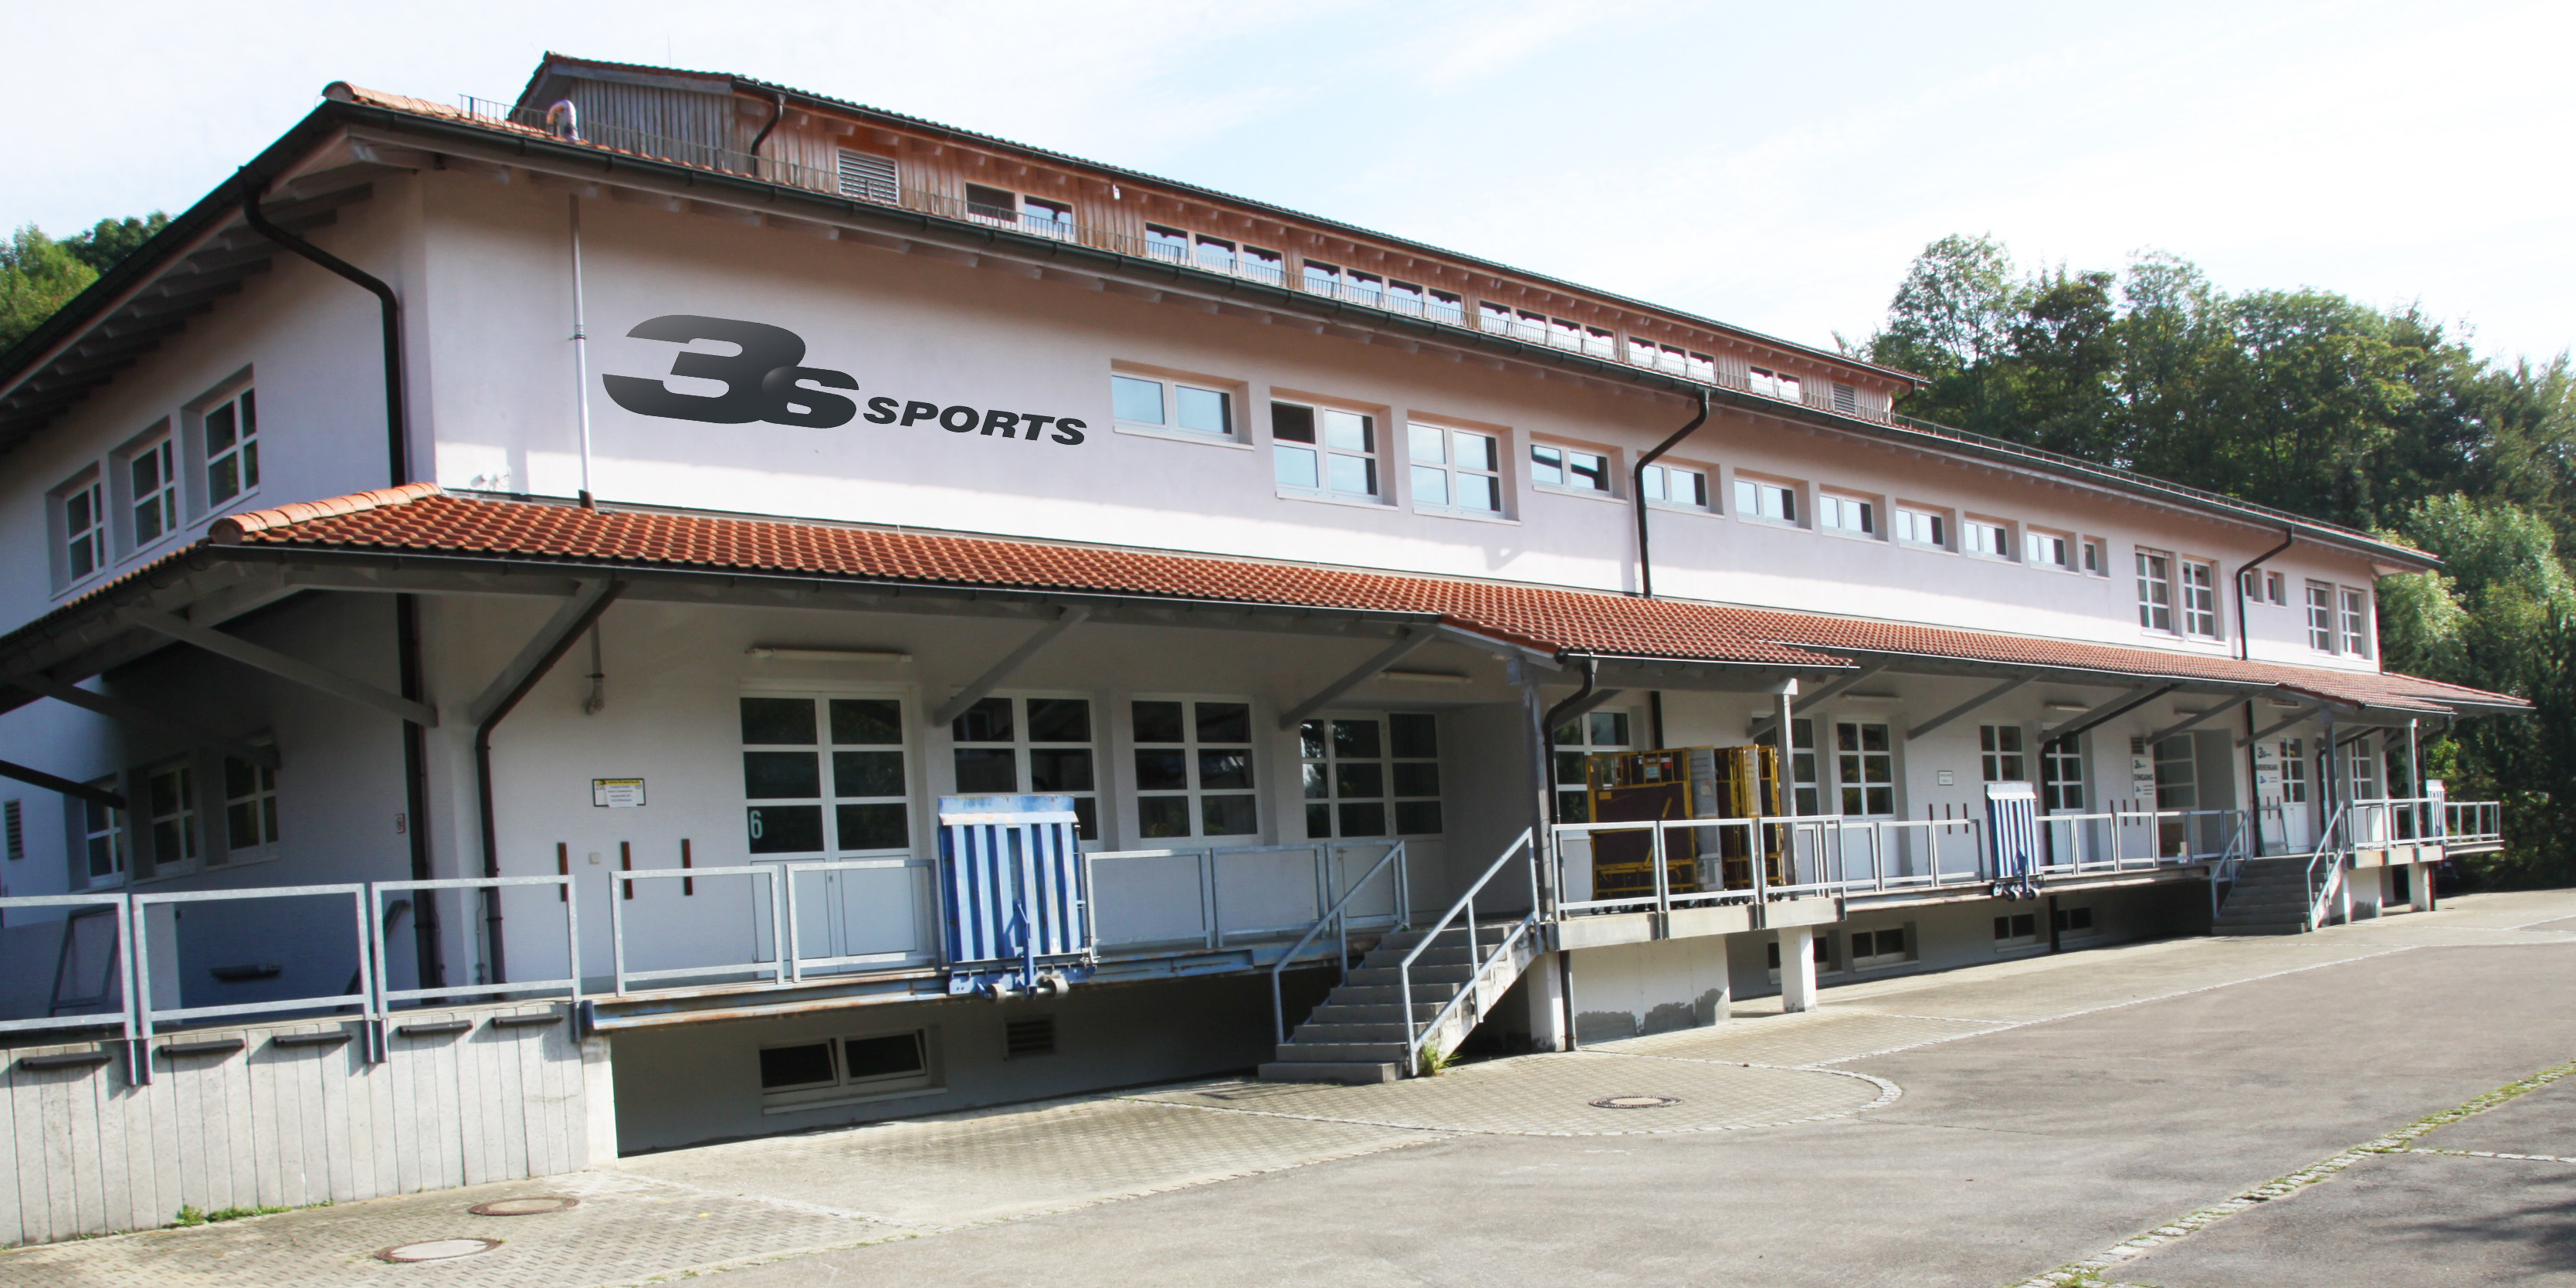 3s-sports GmbH in Münsingen